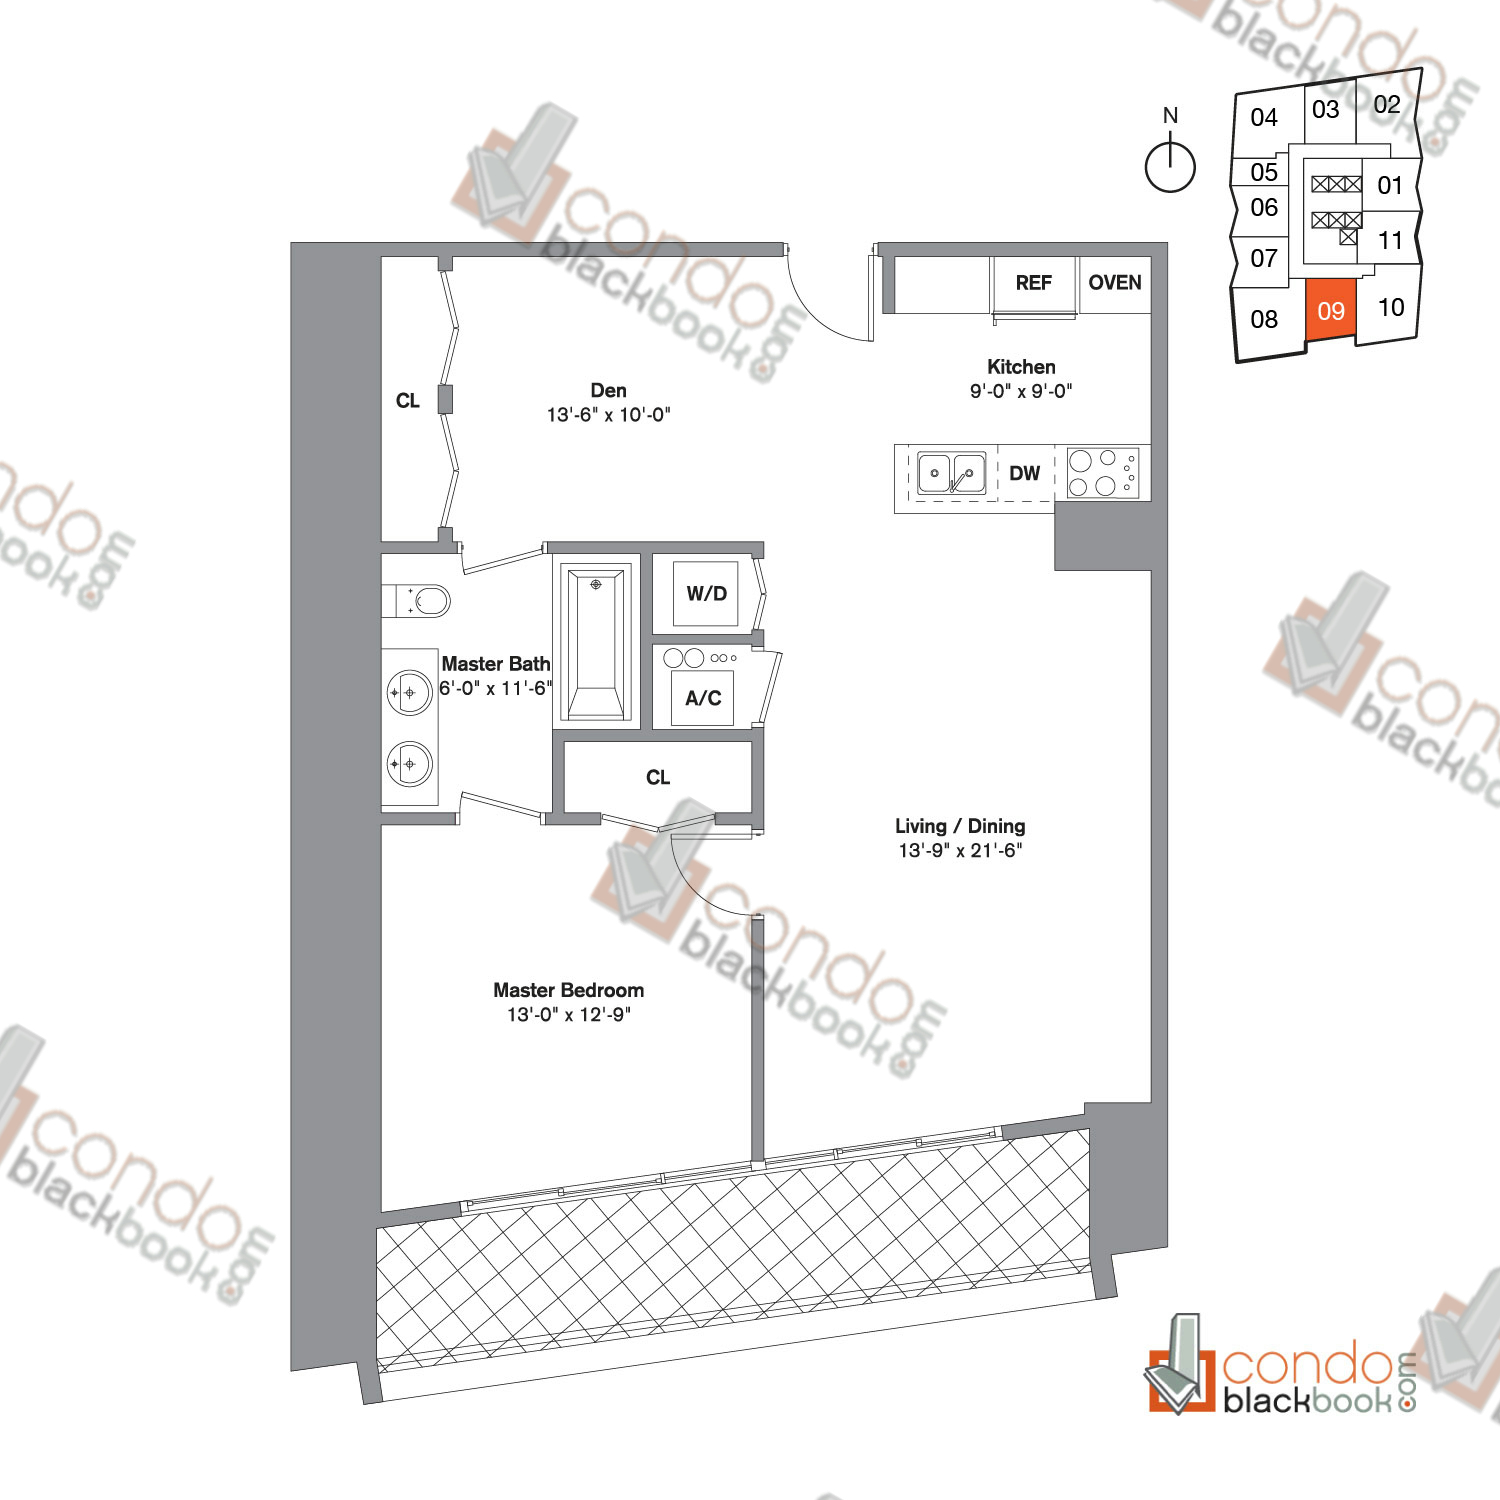 Floor plan for Icon Brickell Viceroy Brickell Miami, model Unit F, line 09, 1/1.5 bedrooms, 995 sq ft